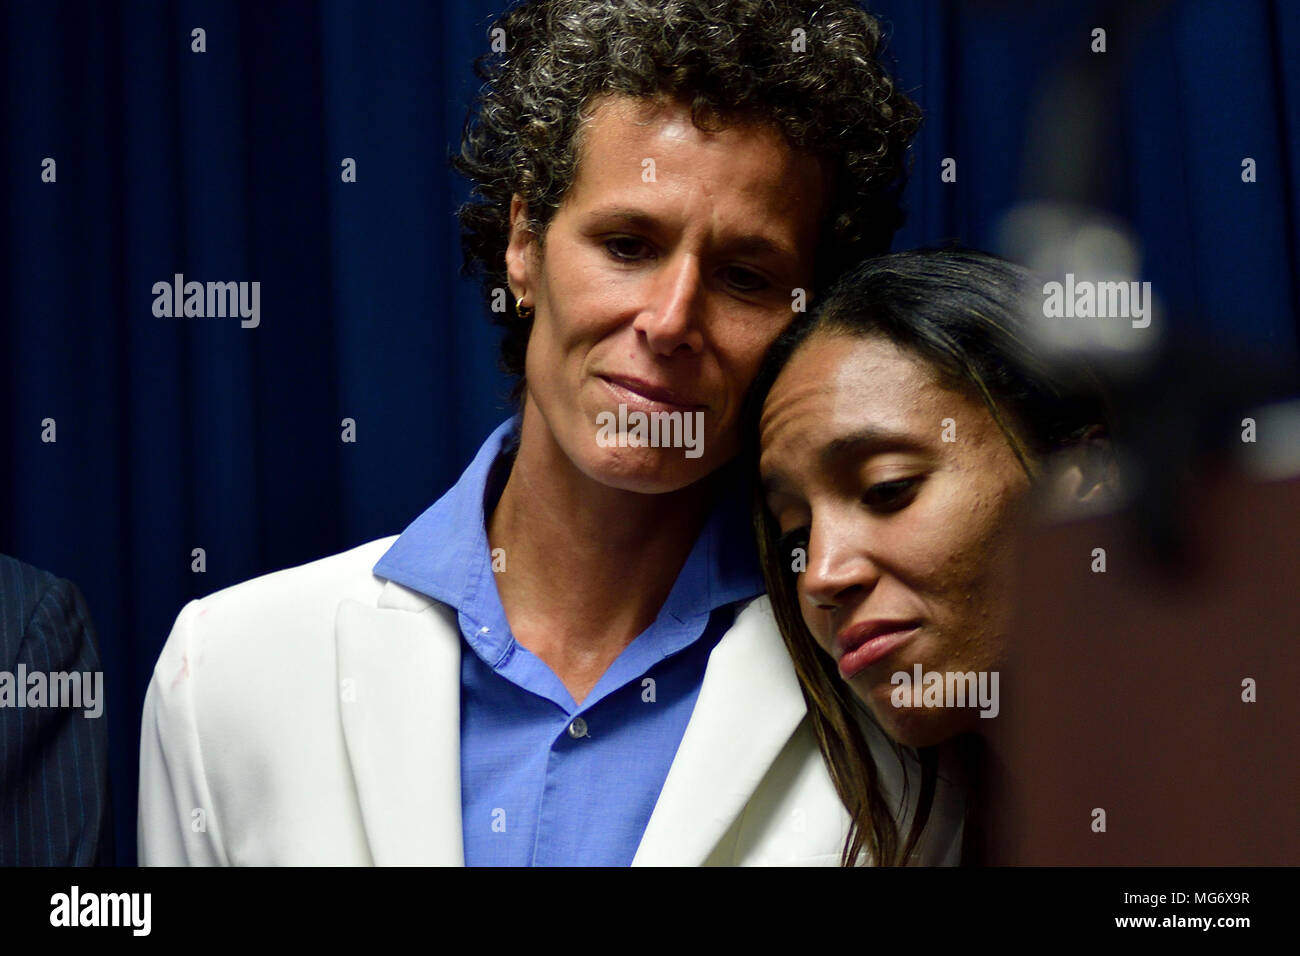 Norristown, USA. 26th Apr, 2018. Accuser Andrea Constand attends a press conveners of the Prosecution after the guilty verdict in the Bill Cosby sexual assault trial, at Montgomery County Court House in Norristown, PA, USA, on April 26, 2018. Credit: Bastiaan Slabbers/Alamy Live News - Stock Image